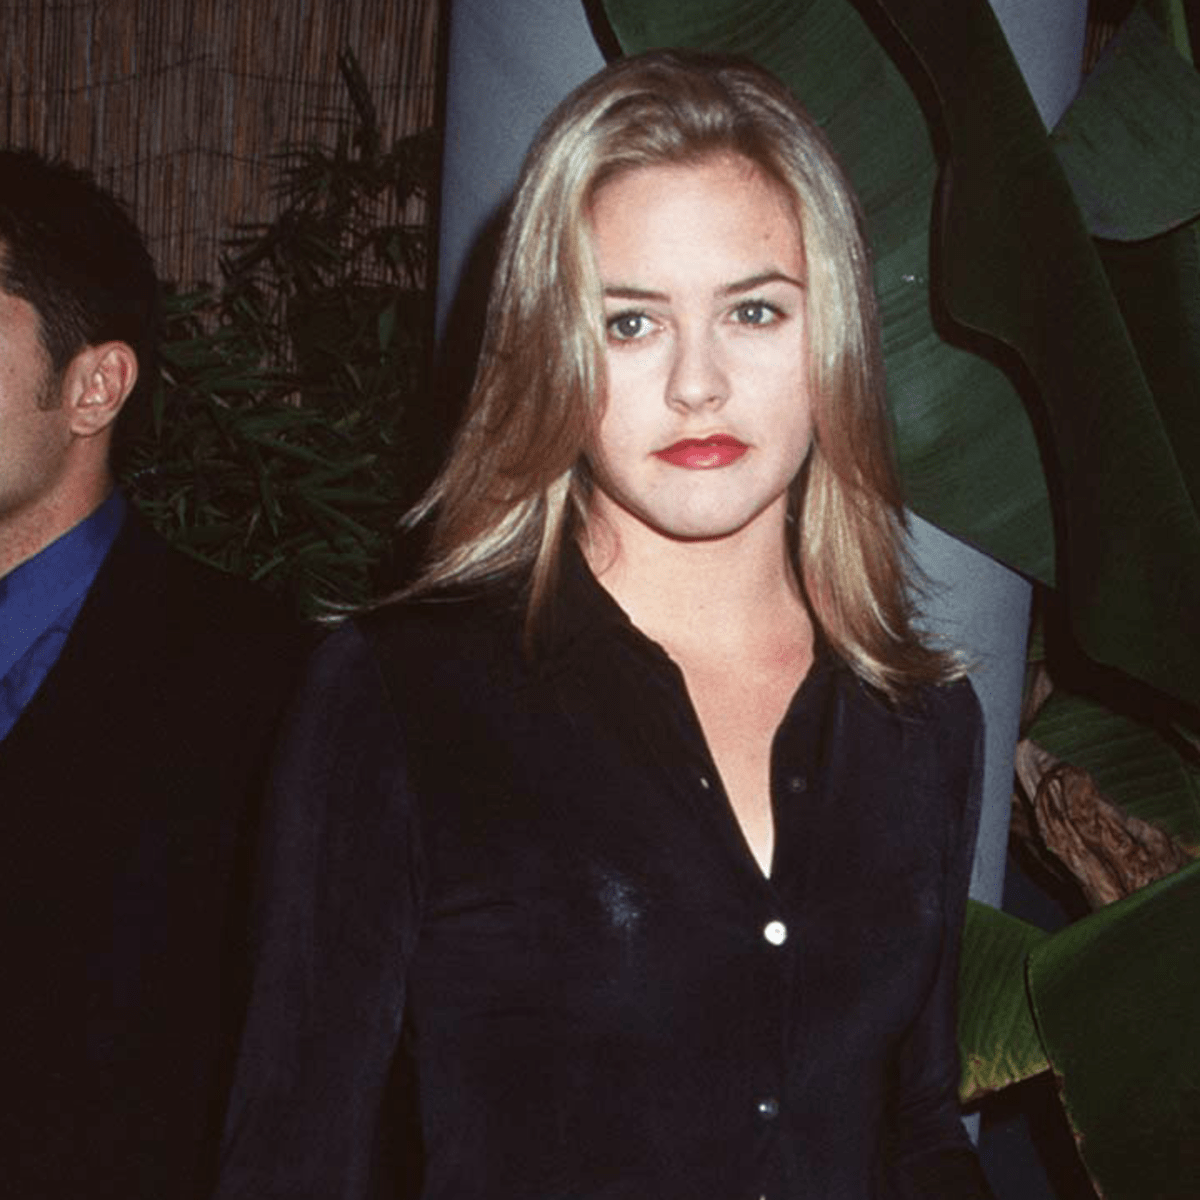 Great Outfits in Fashion History: Alicia Silverstone Channeling Cher Horowitz in a Silky Button-Down - Fashionista